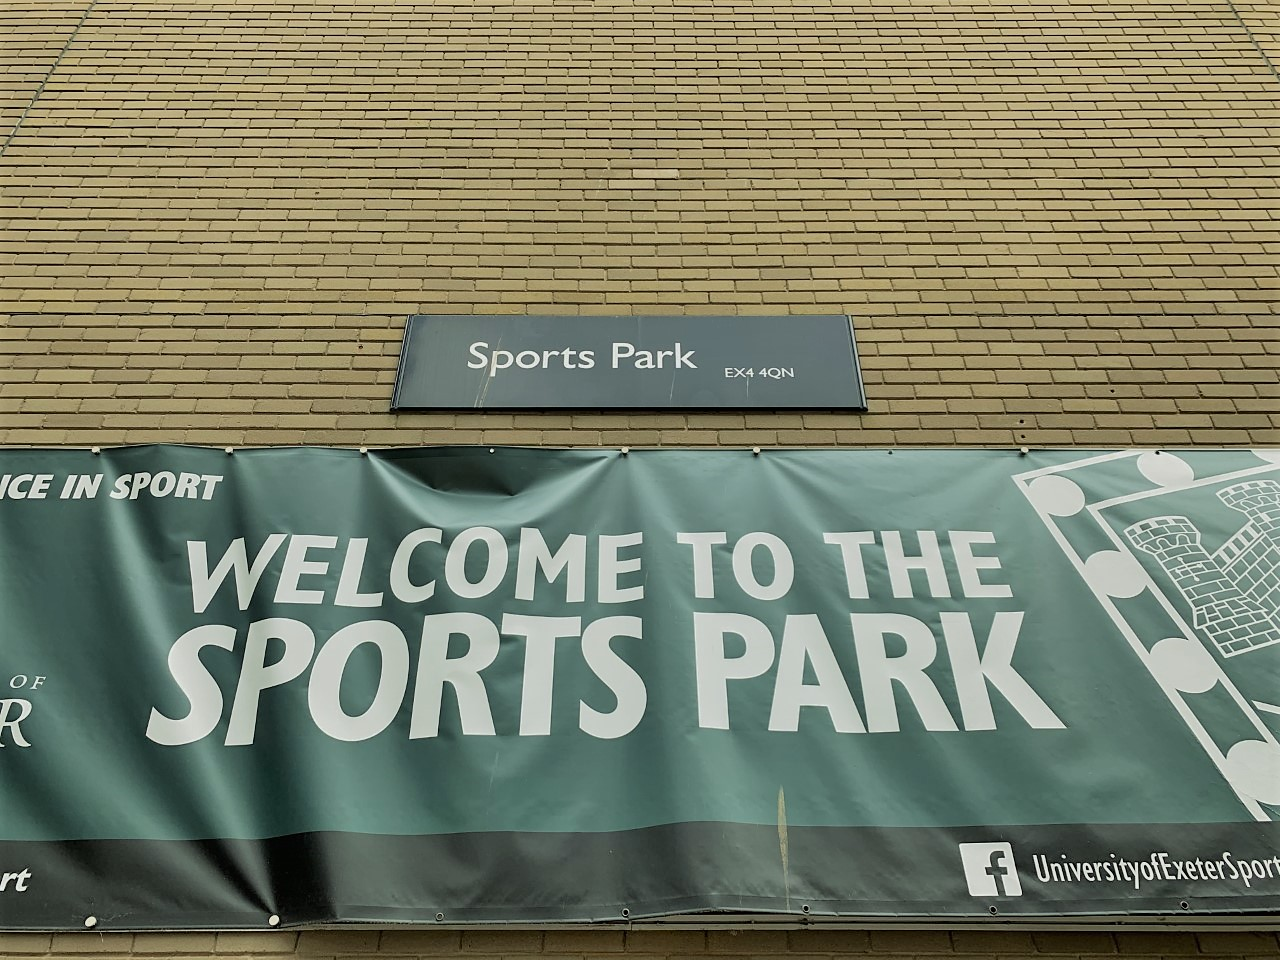 """""""Welcome to the Sports Park"""" banner on the wall of the Sports Park building on Streatham Campus"""